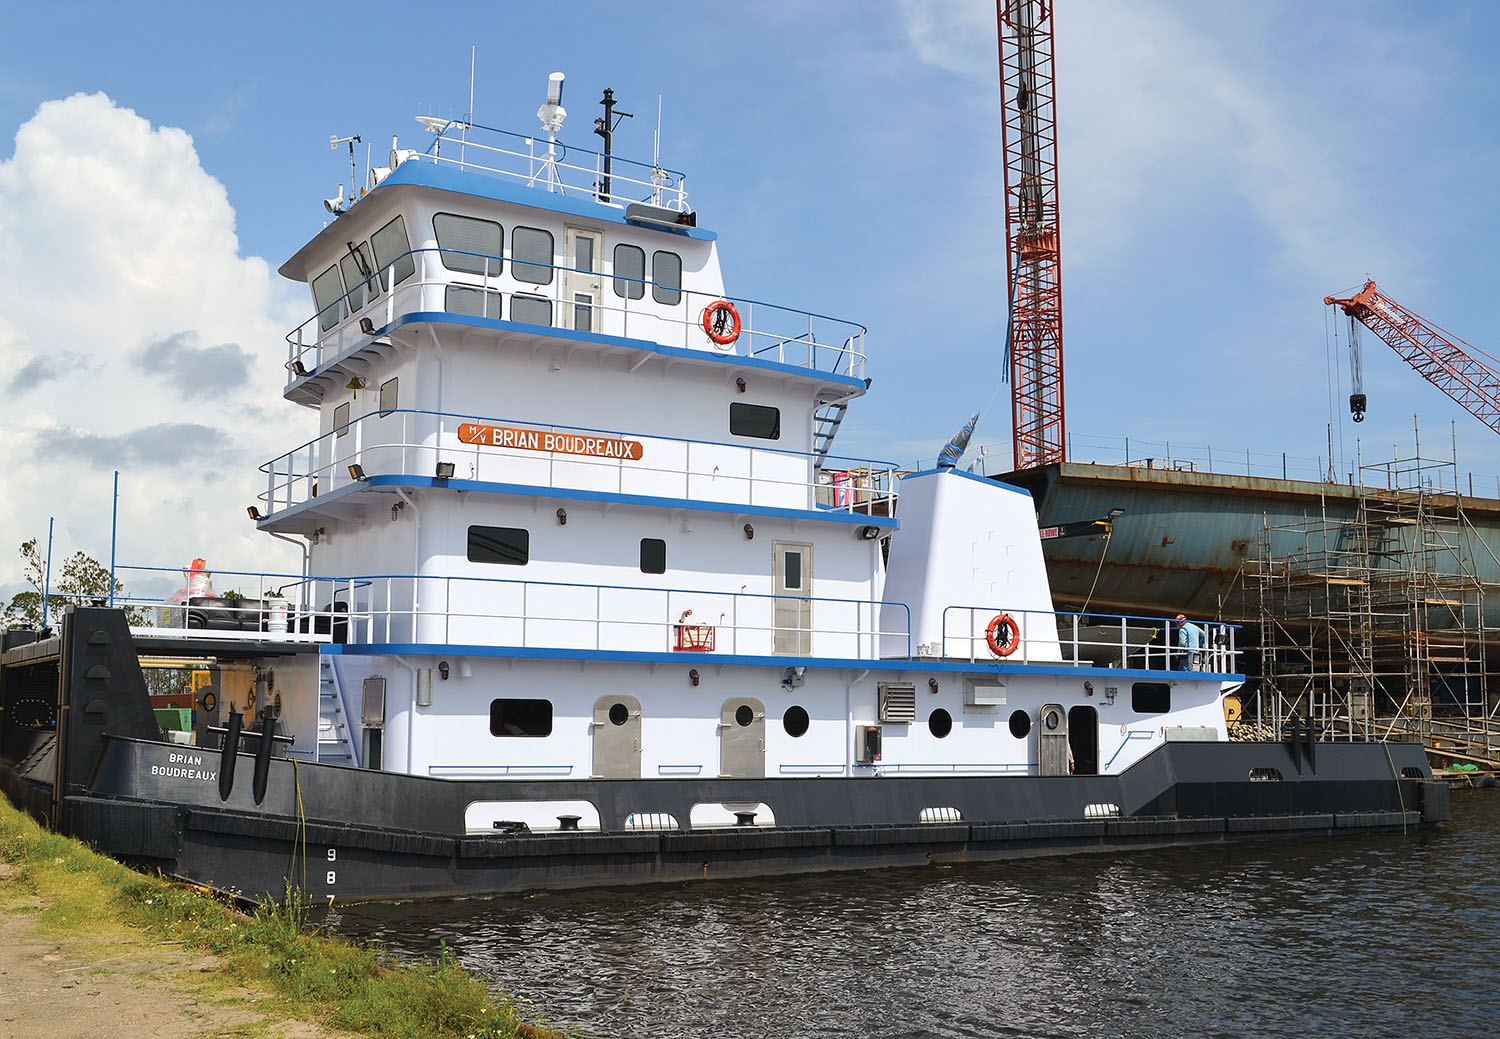 The Brian Boudreaux is the first boat in the series to be issued a Subchapter M Certificate of Inspection.